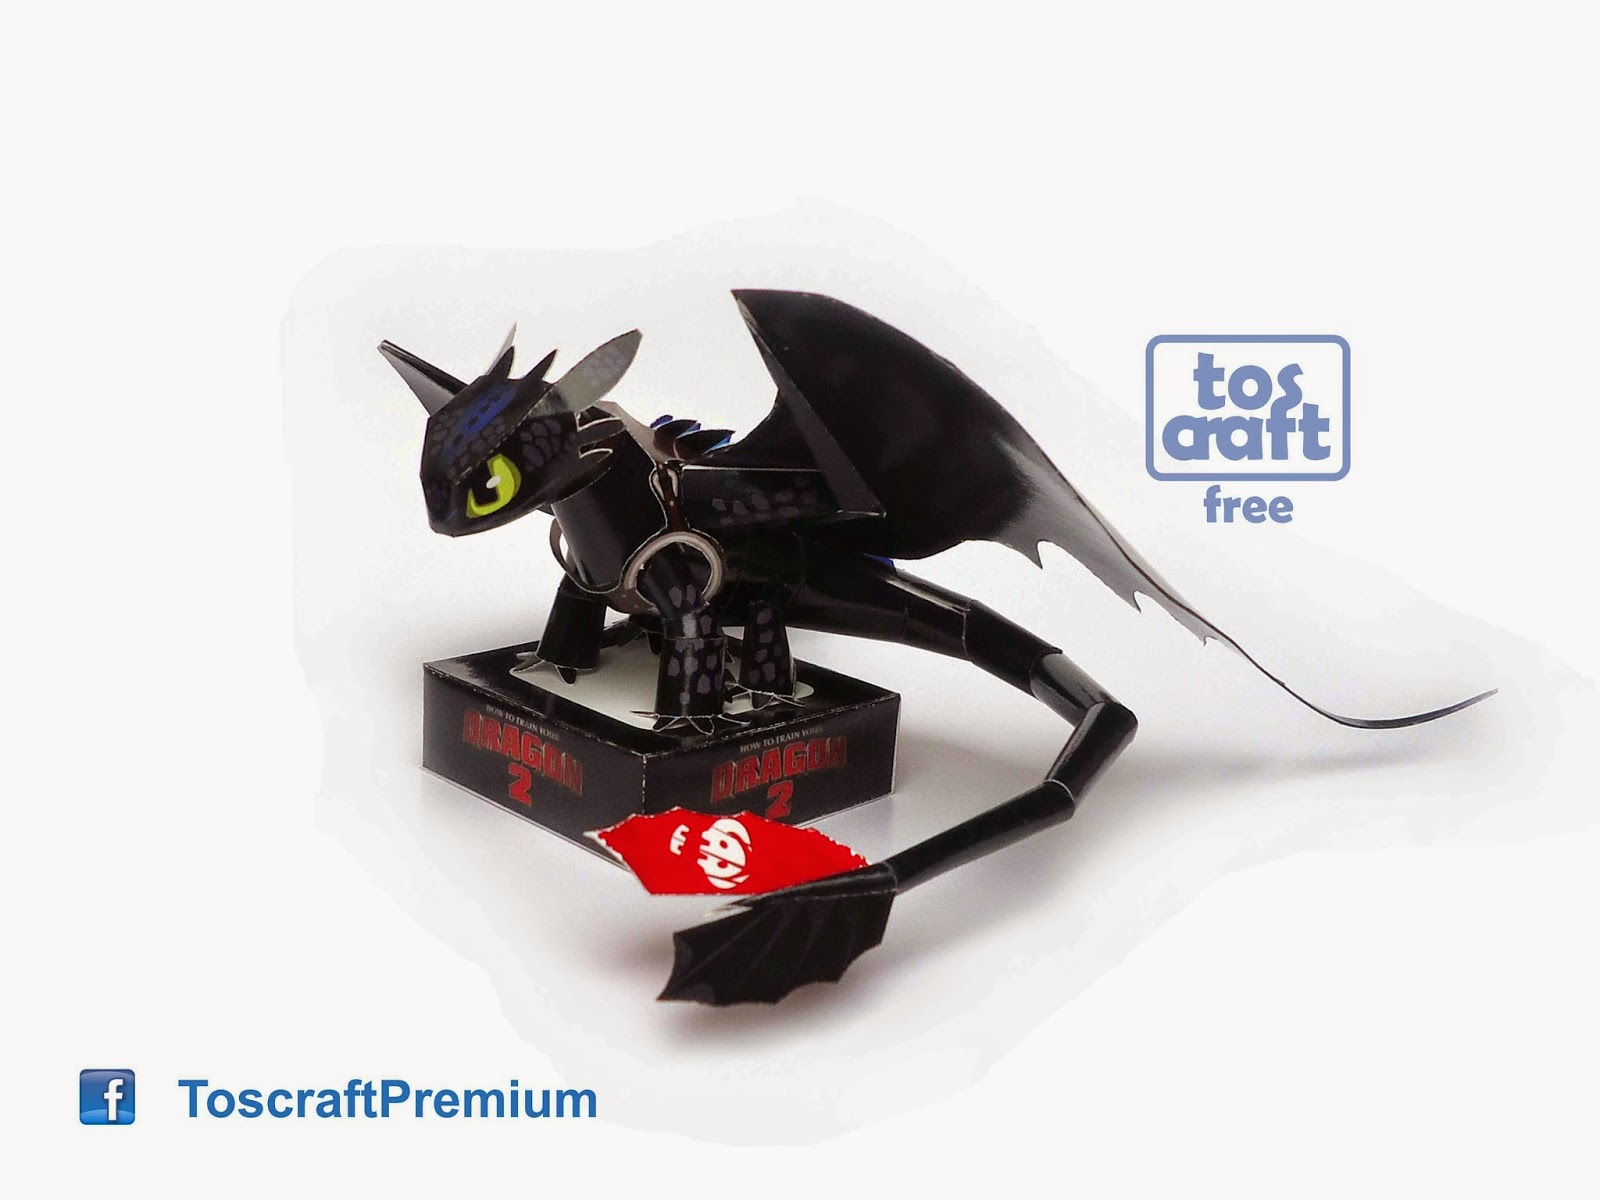 Tos craft toothless how to train your dragon 2 papercraft last year i have promised to make toothless from how to train your dragon movies so this is a very long work until im confidence enough to design this altavistaventures Choice Image